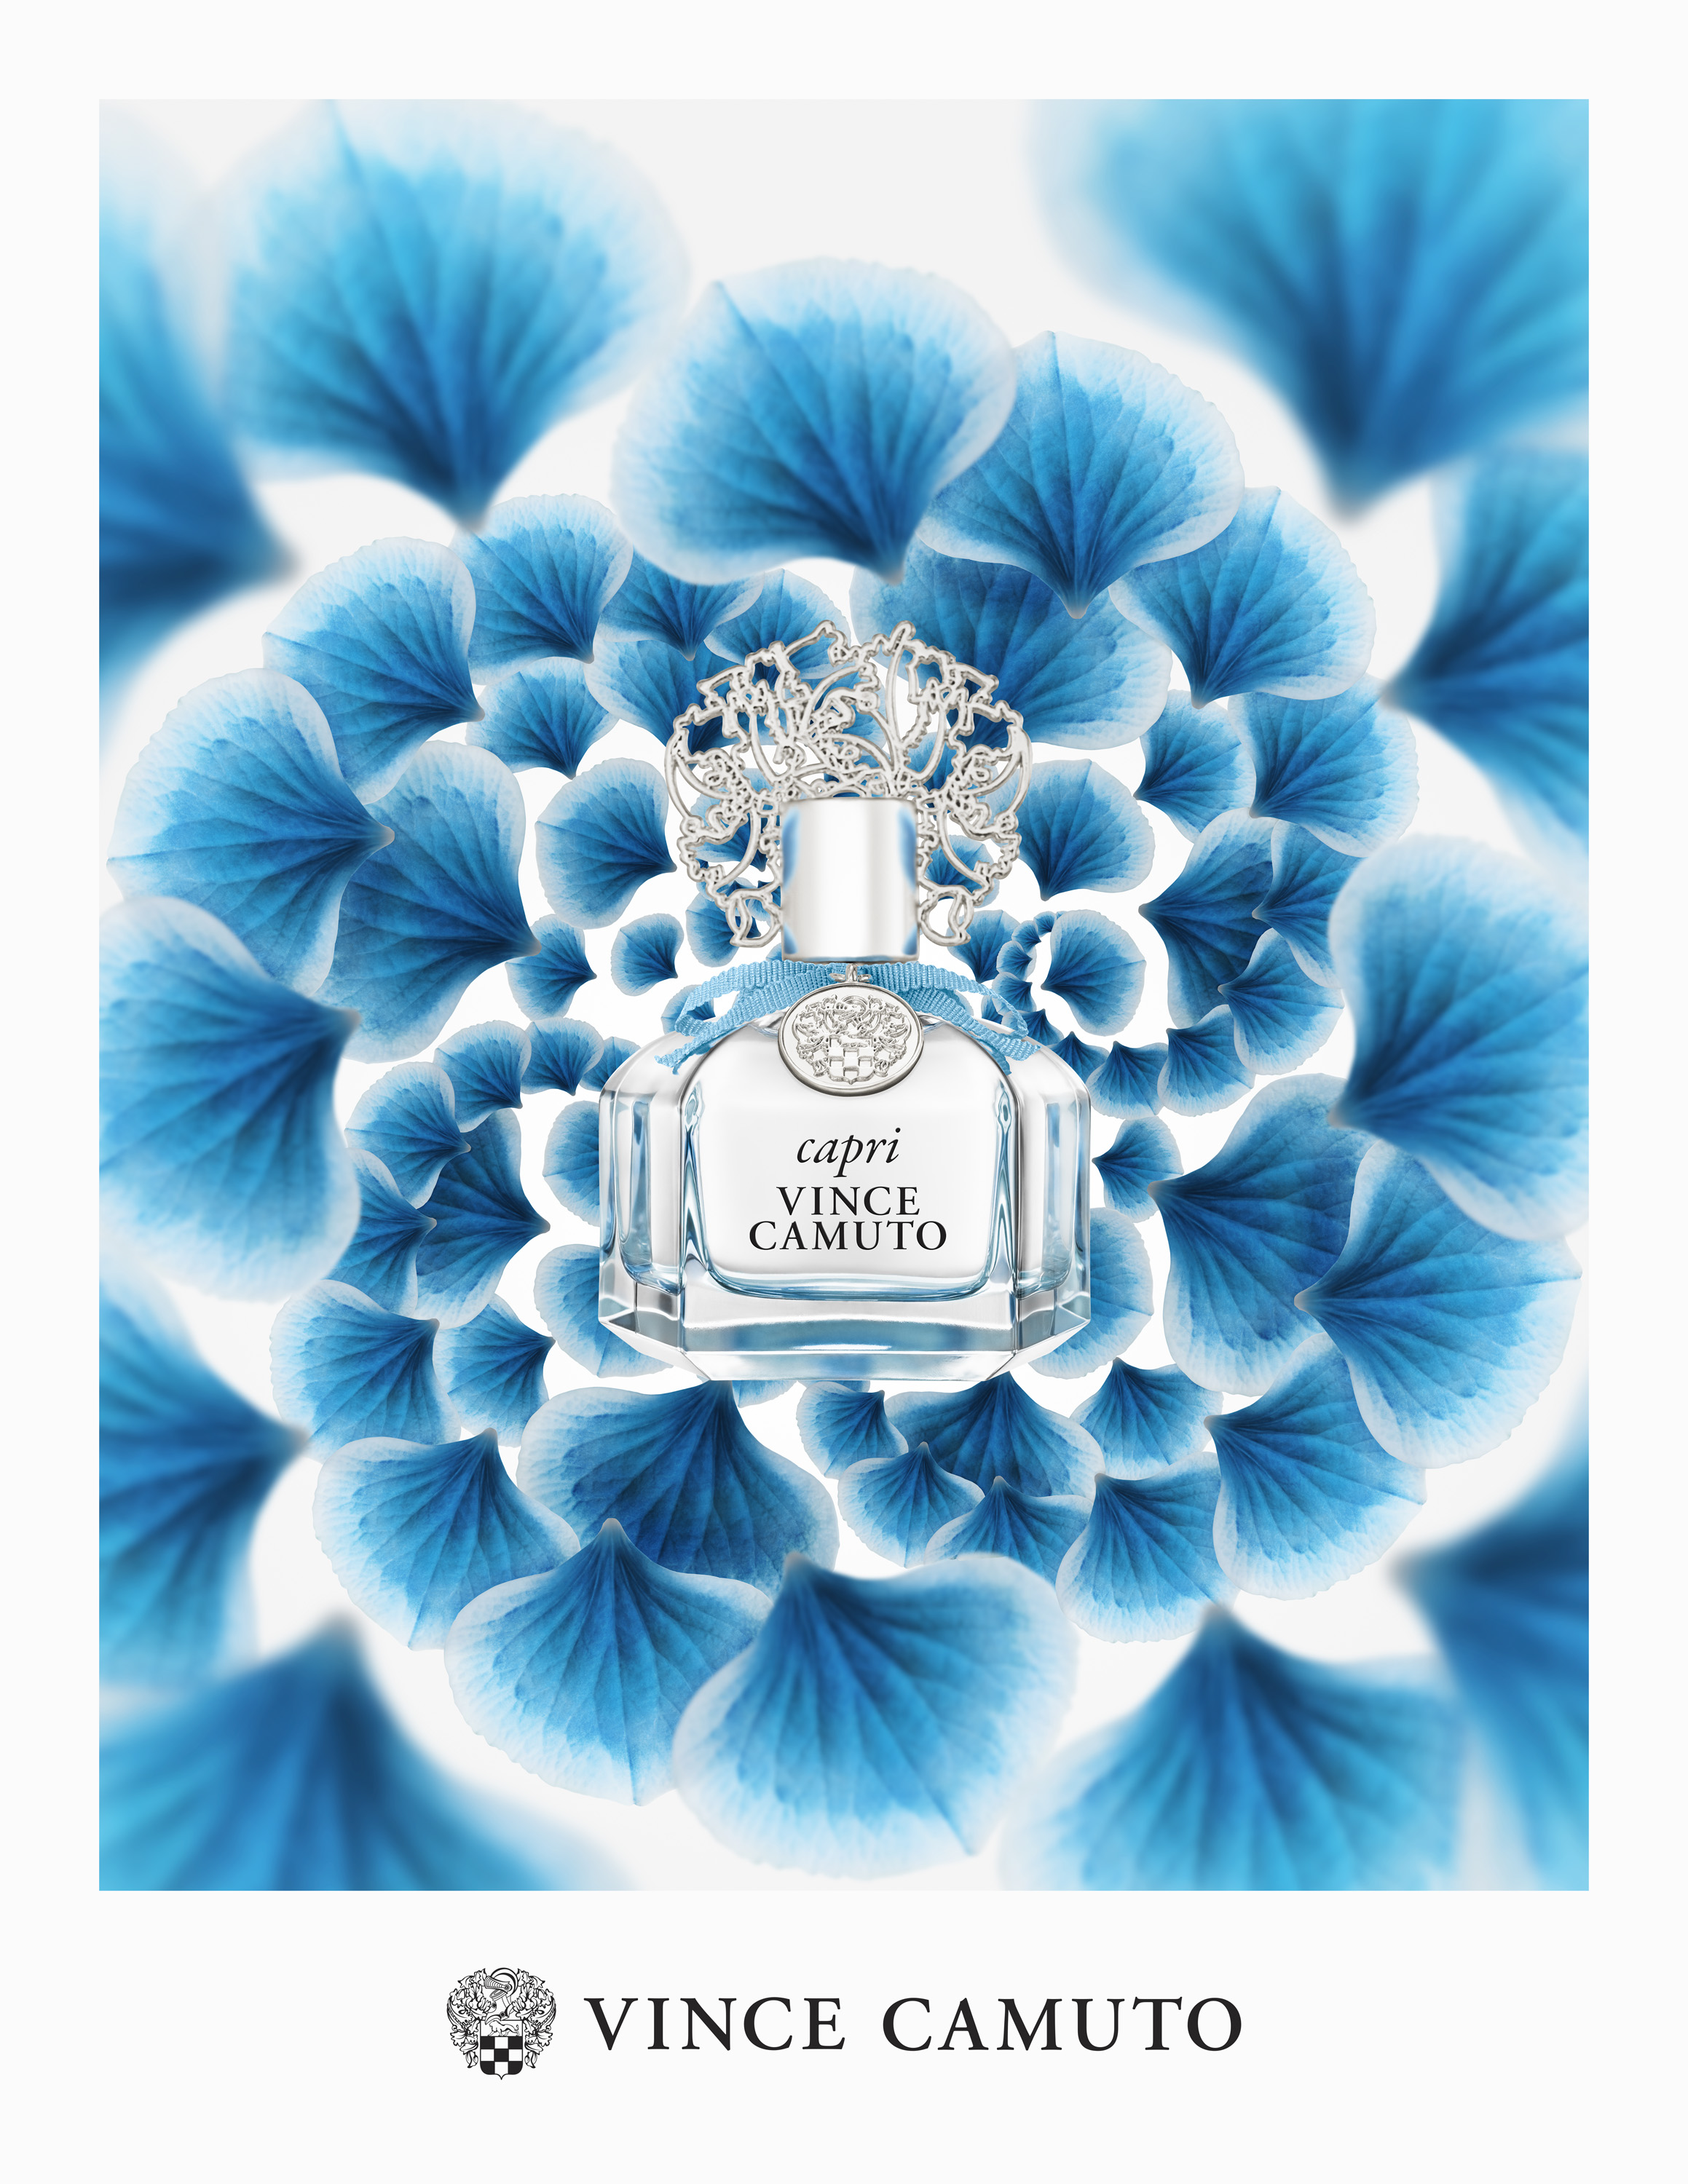 Vince-Camuto-Capri-Fragrance-Ad-by-Timothy-Hogan_MF copy.jpg